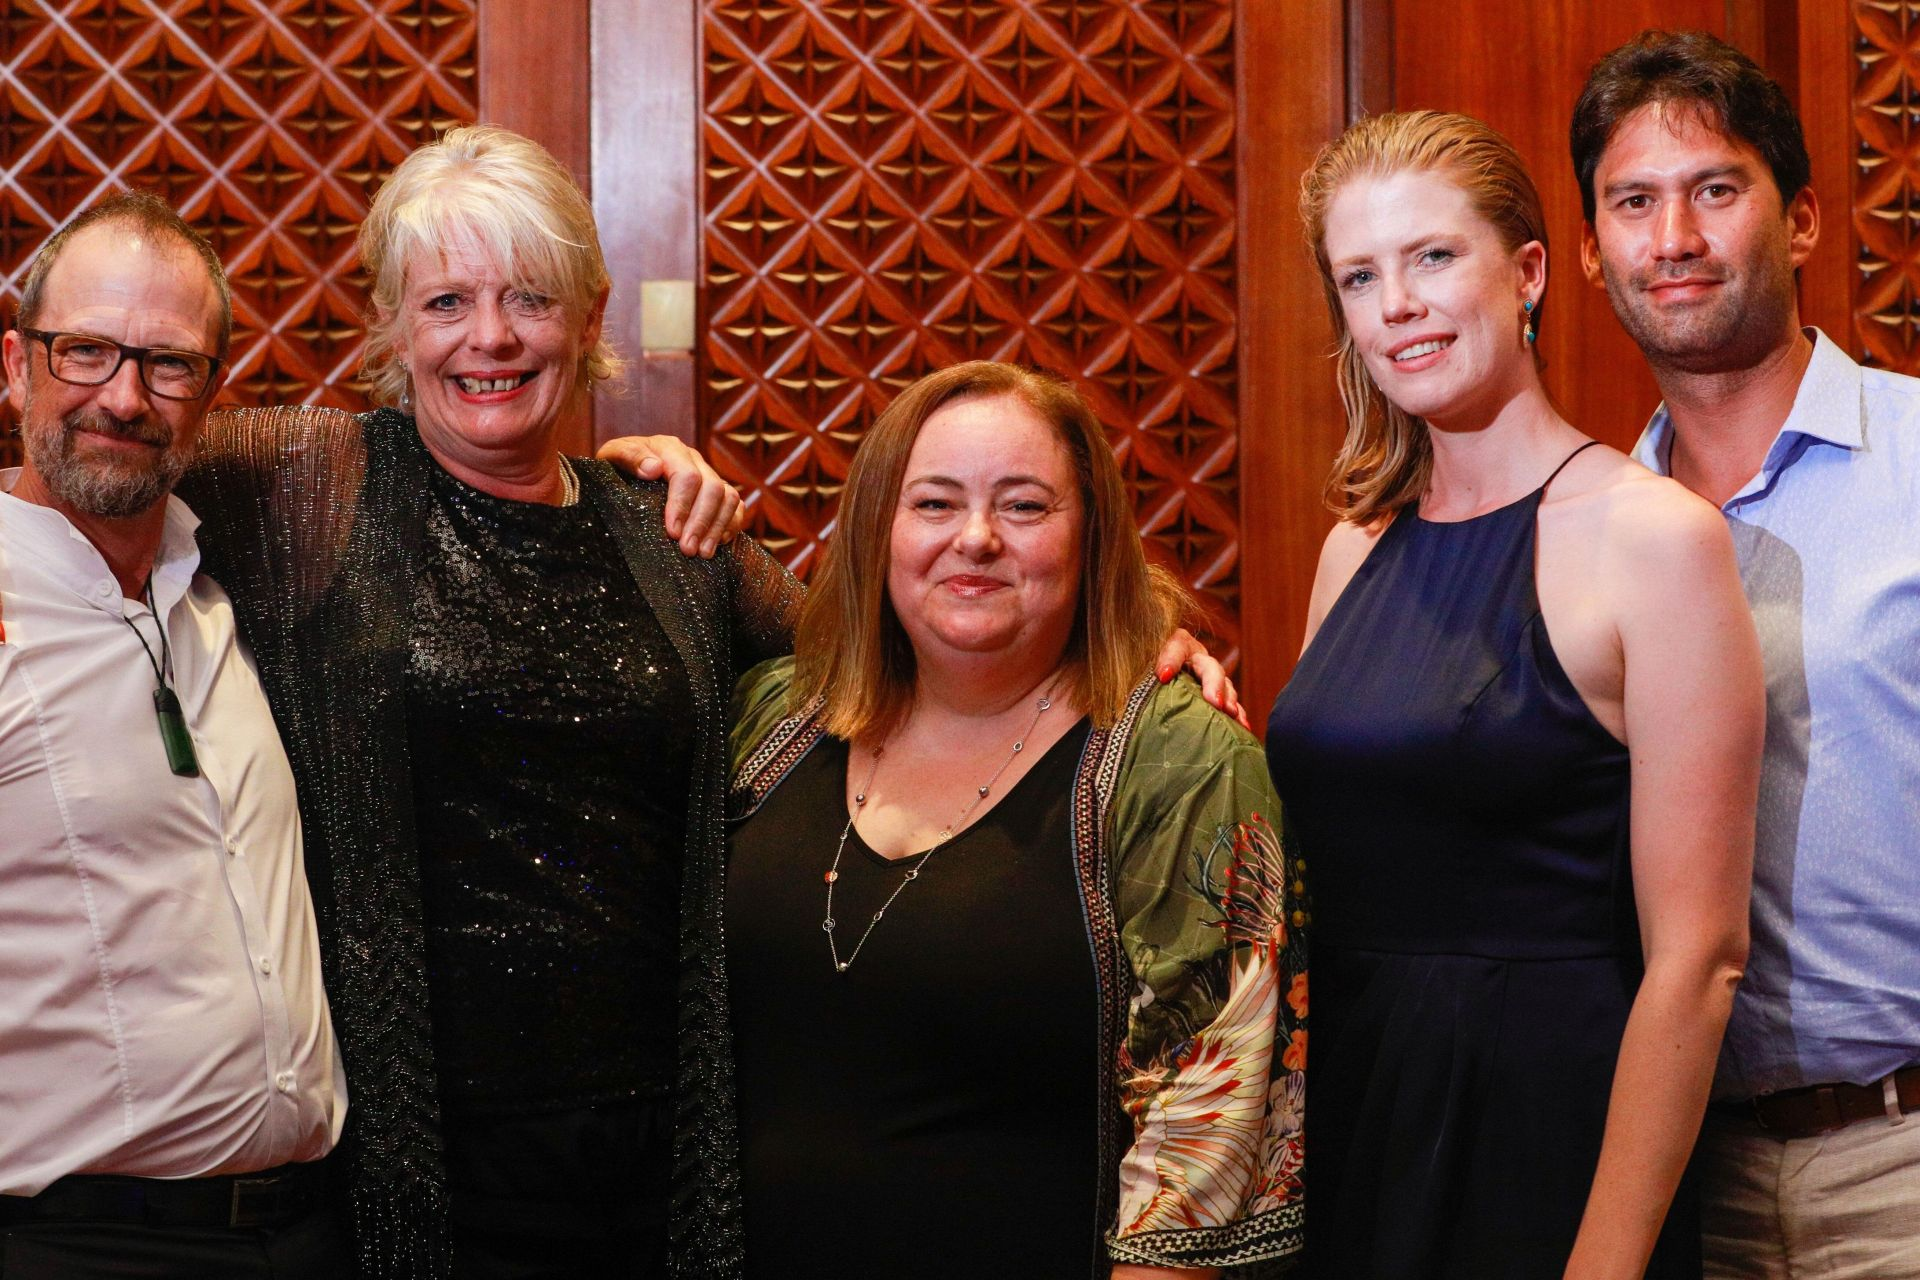 Sara Pantaleo, centre, outgoing CEO of La Porchetta, with franchisees | Inside Franchise Business